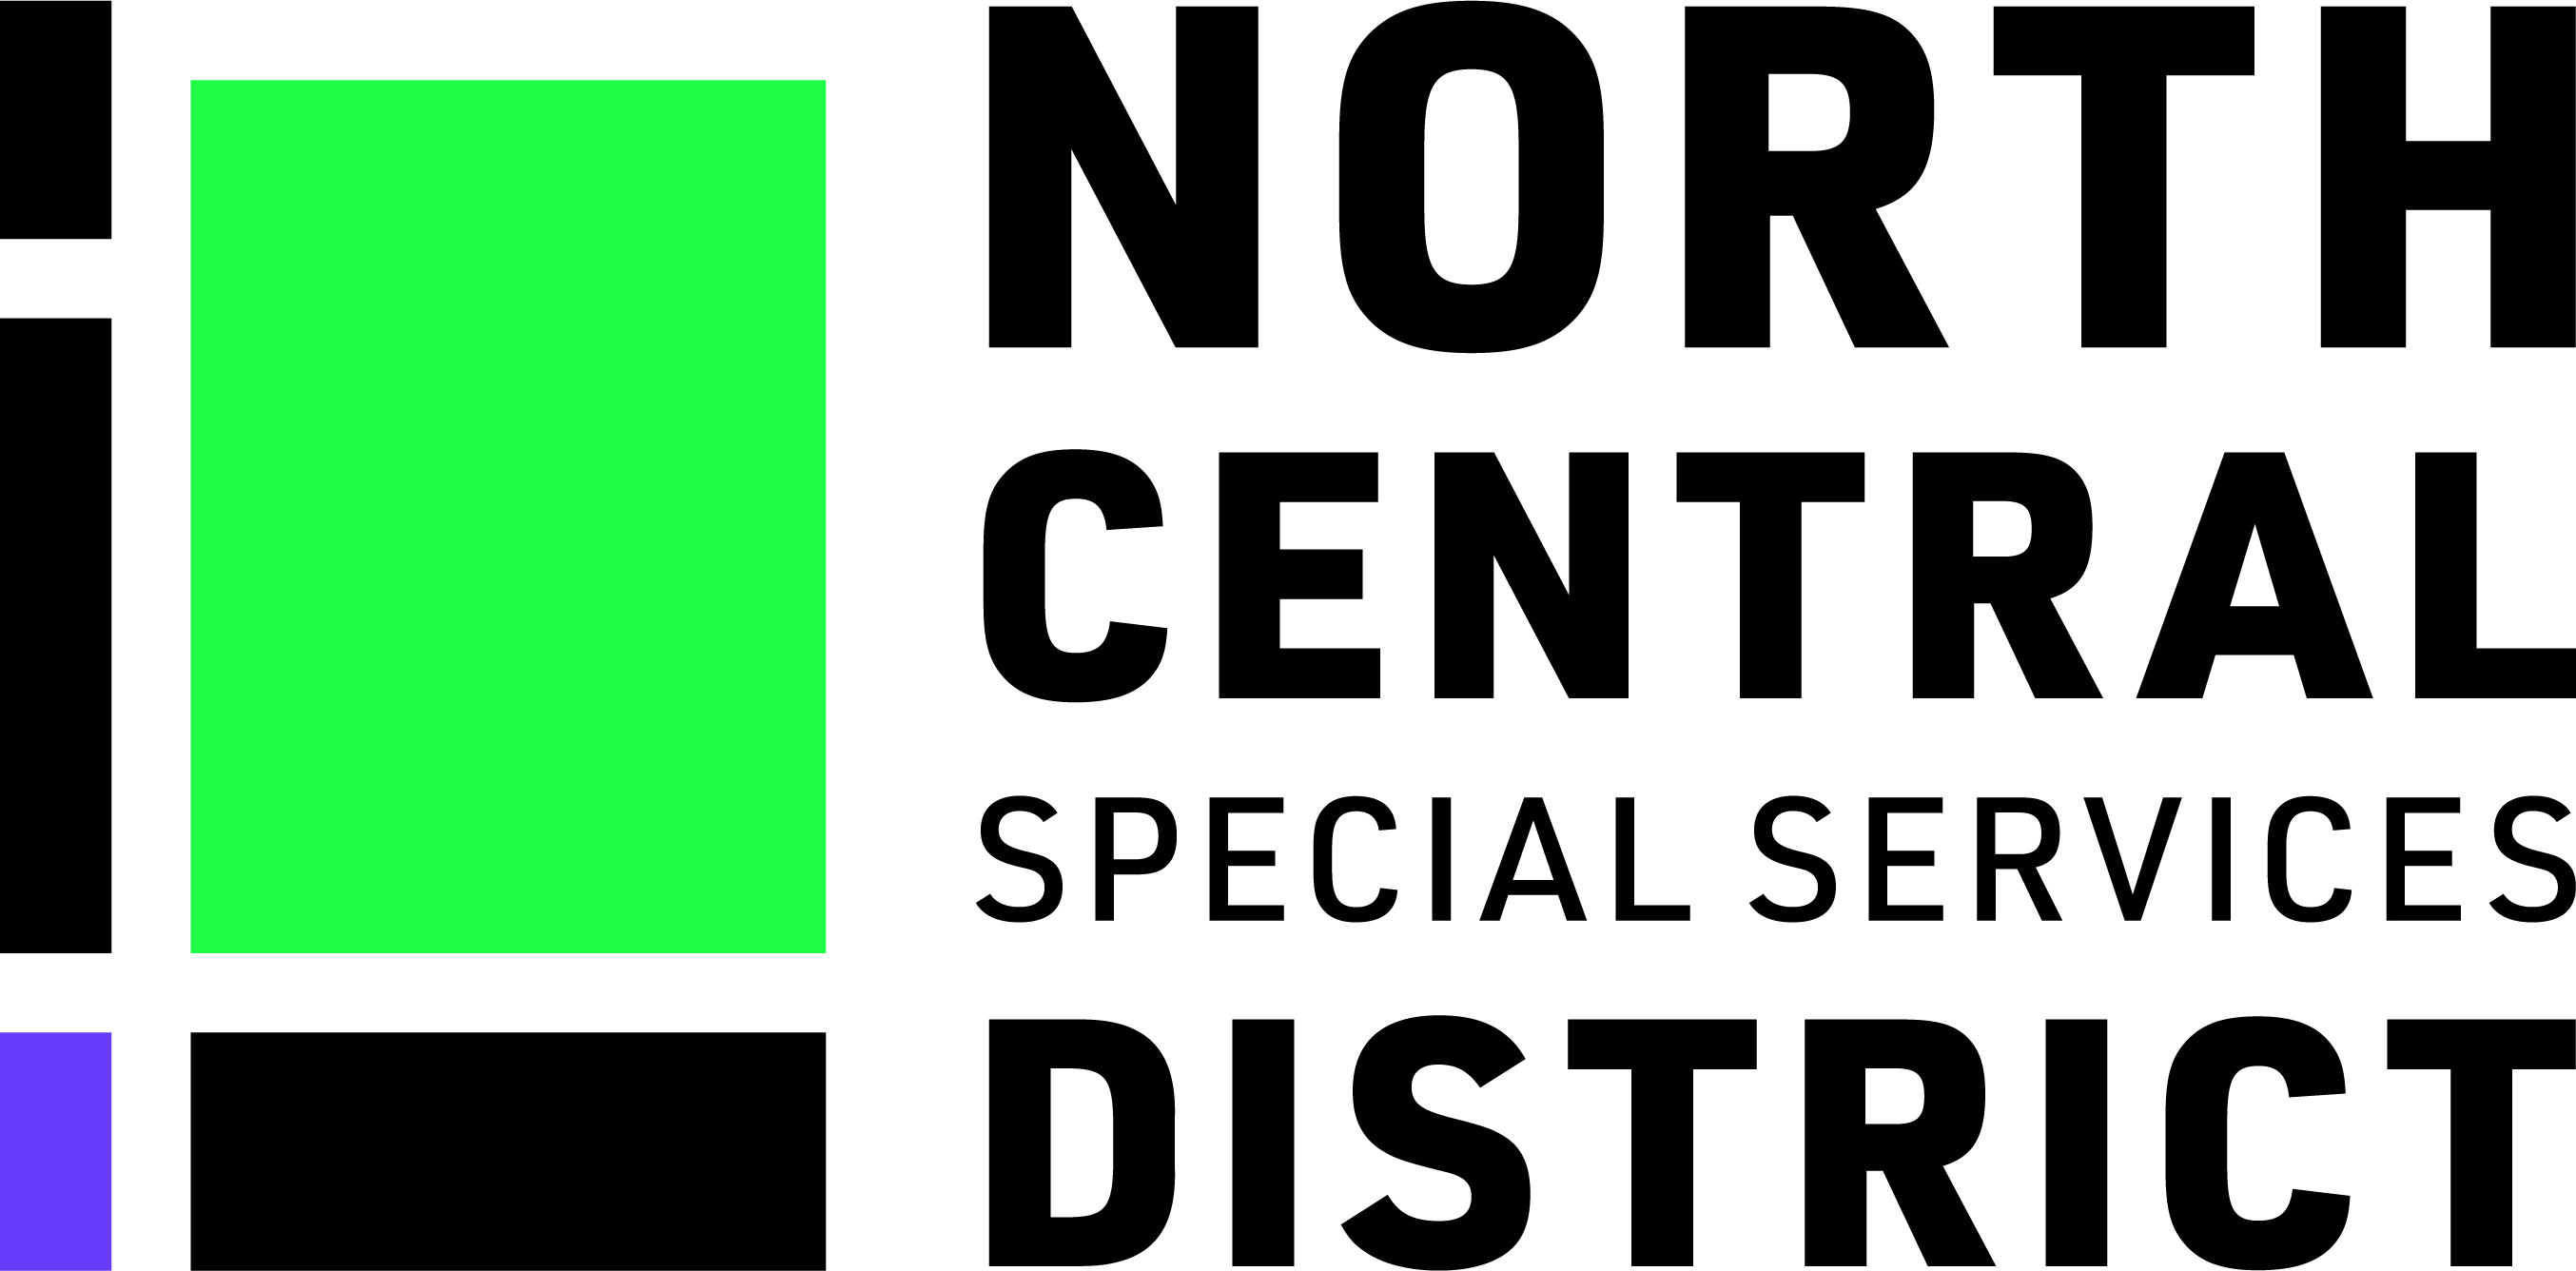 Special Services District logo